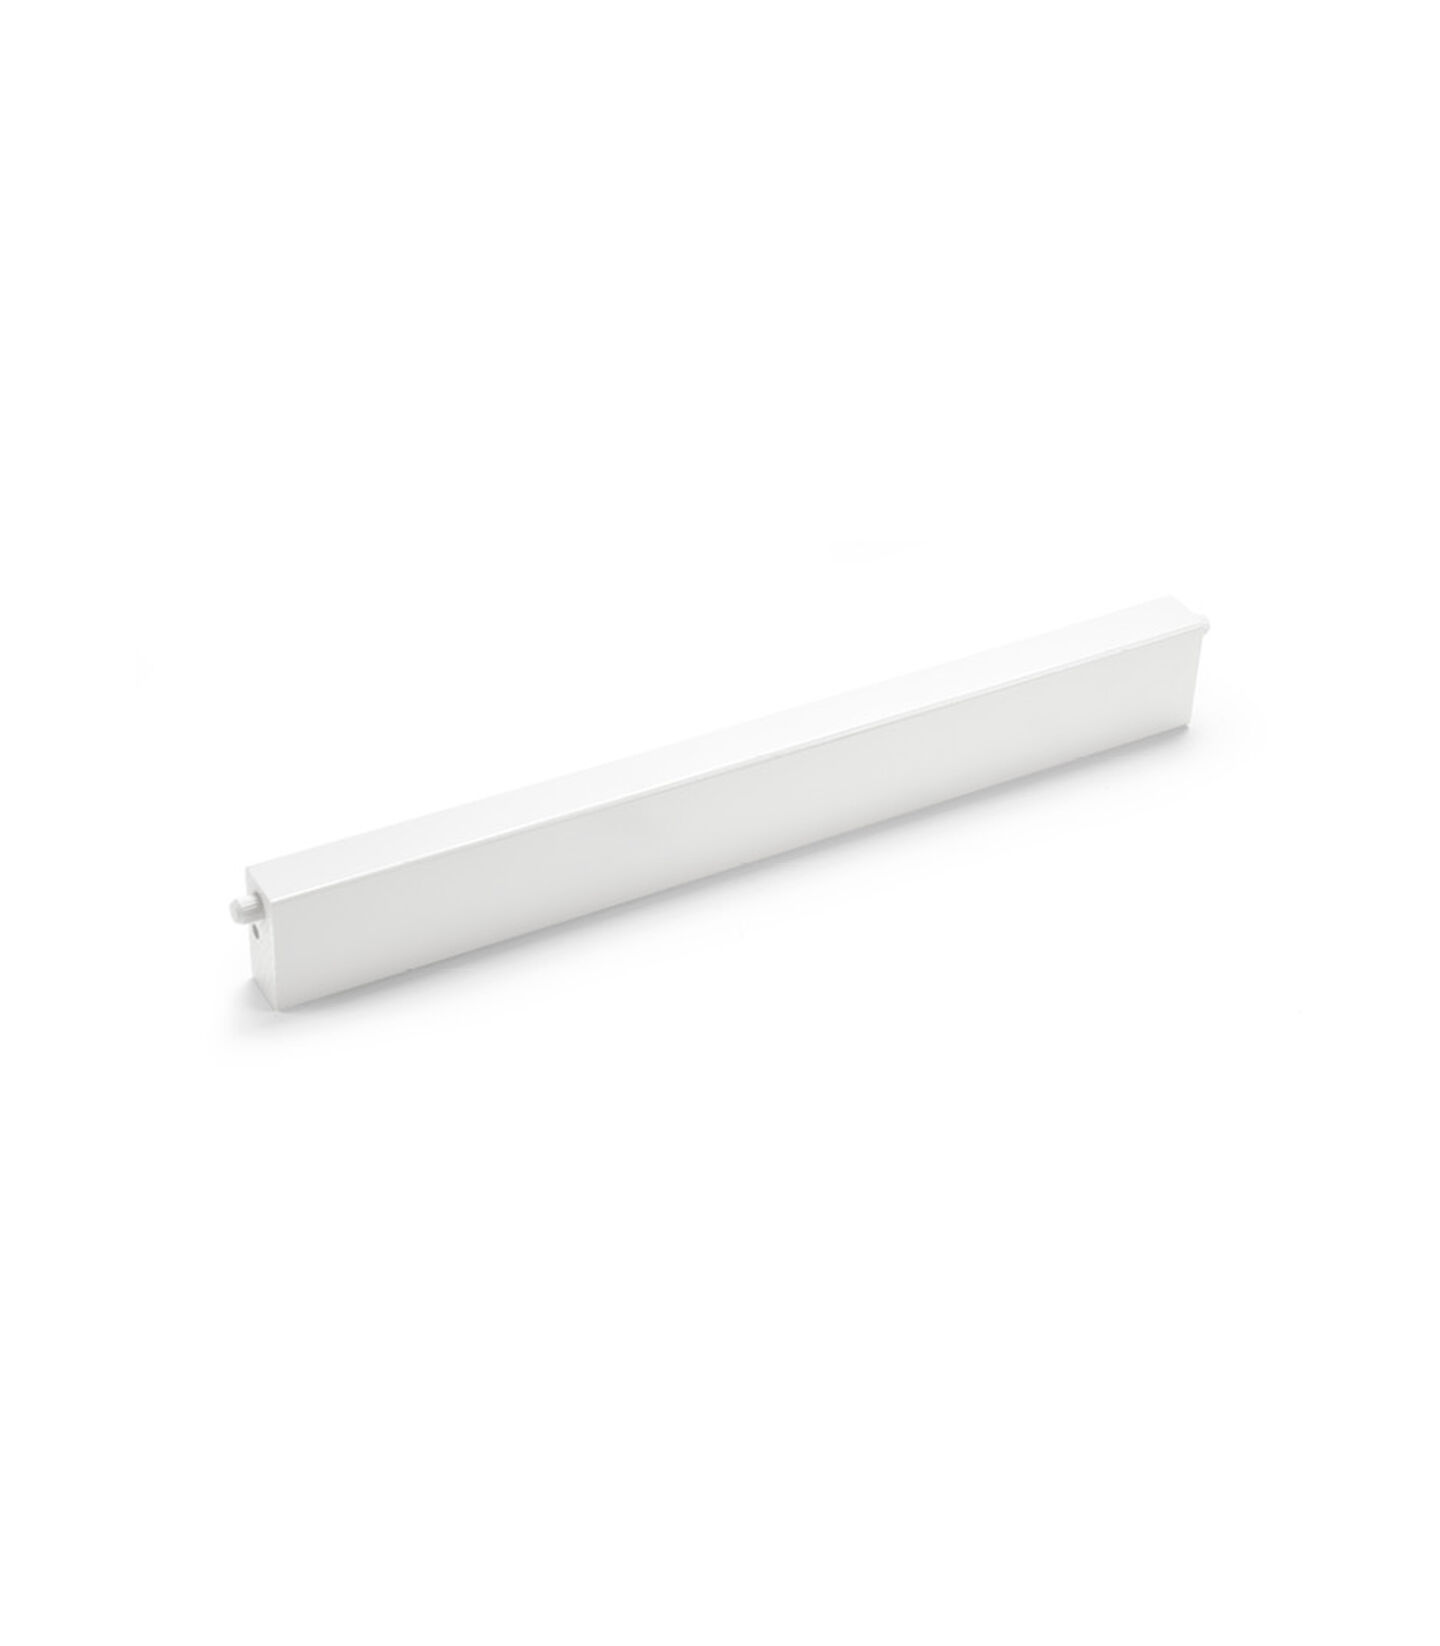 Tripp Trapp® Vloerbeugel White, Wit, mainview view 1